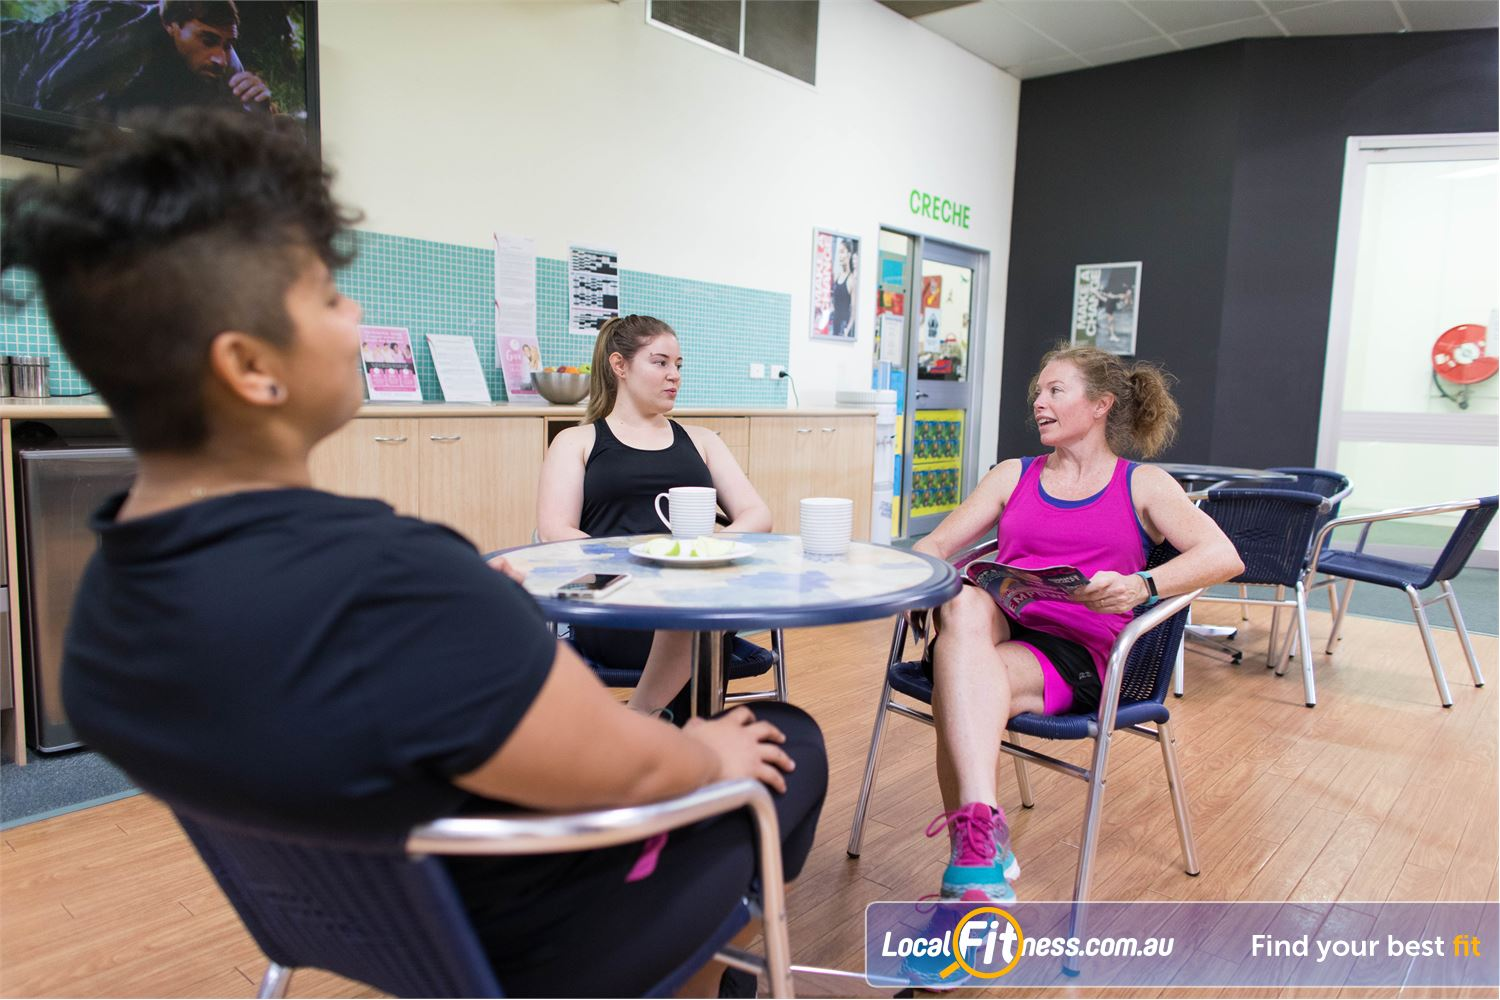 Fernwood Fitness Everton Park Enjoy the company of like-minded women in our members lounge.